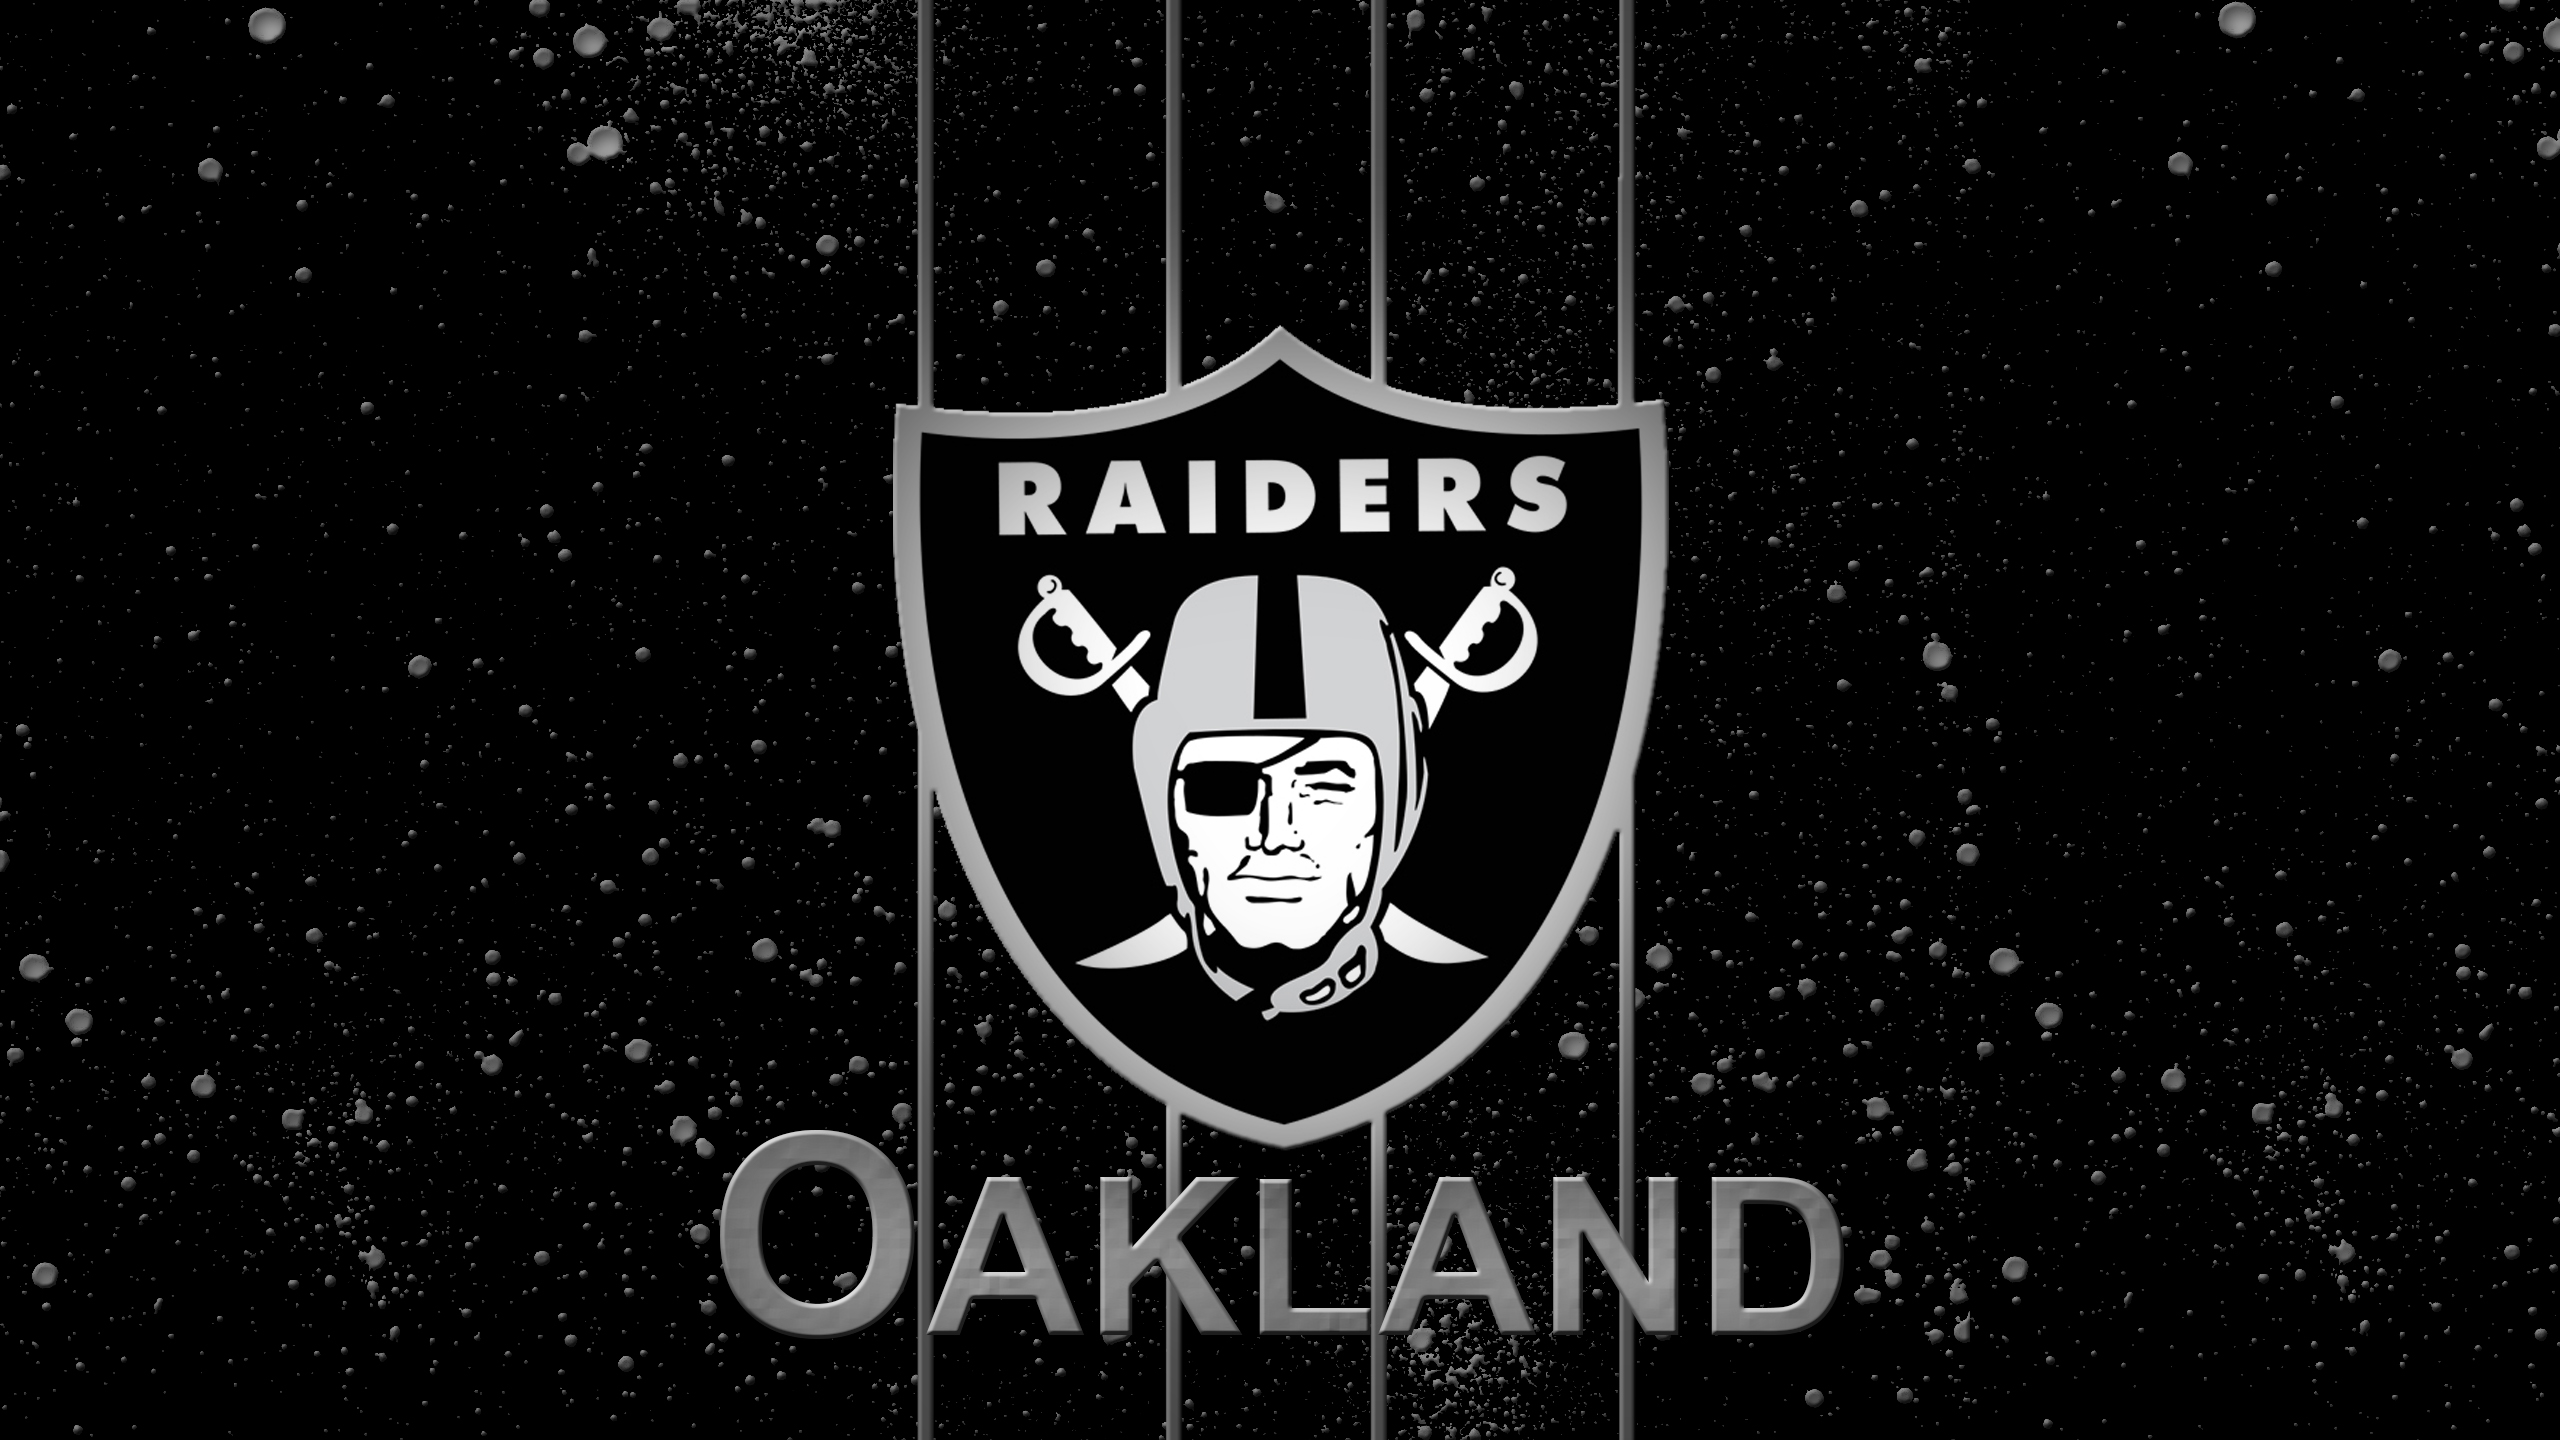 Oakland Raiders Logo wallpaper   1231589 2560x1440